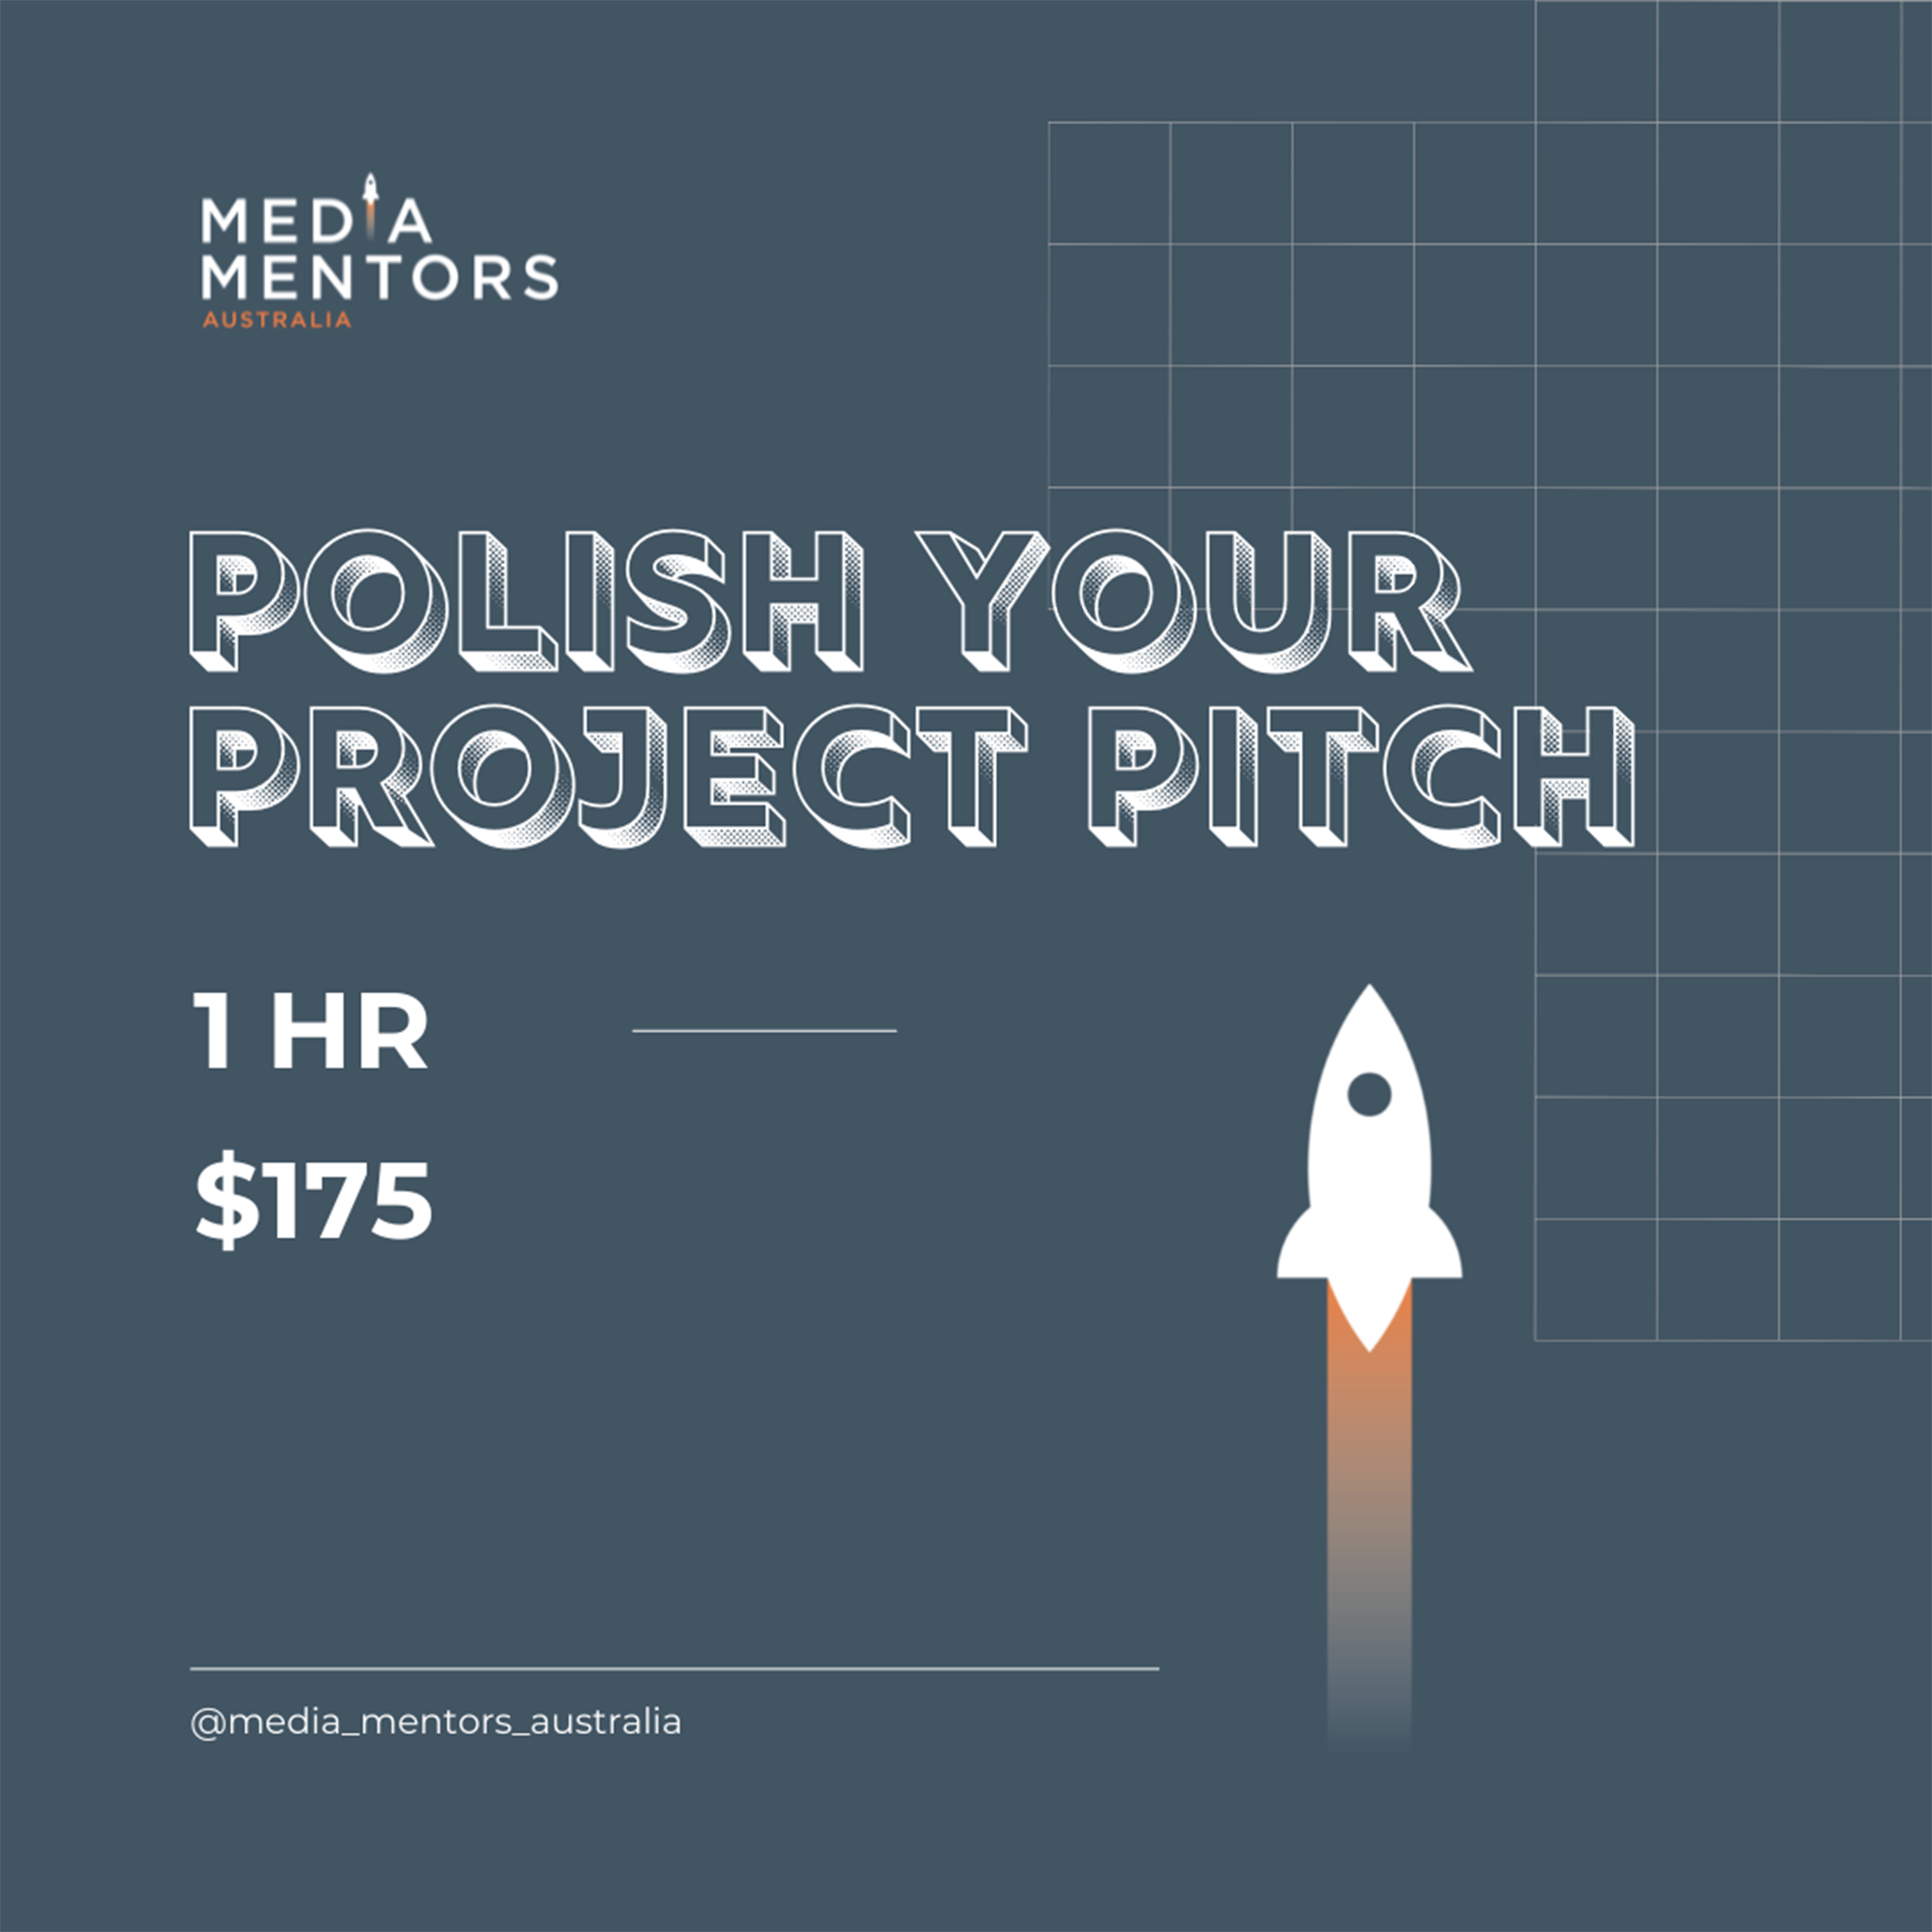 Polish Your Project Pitch